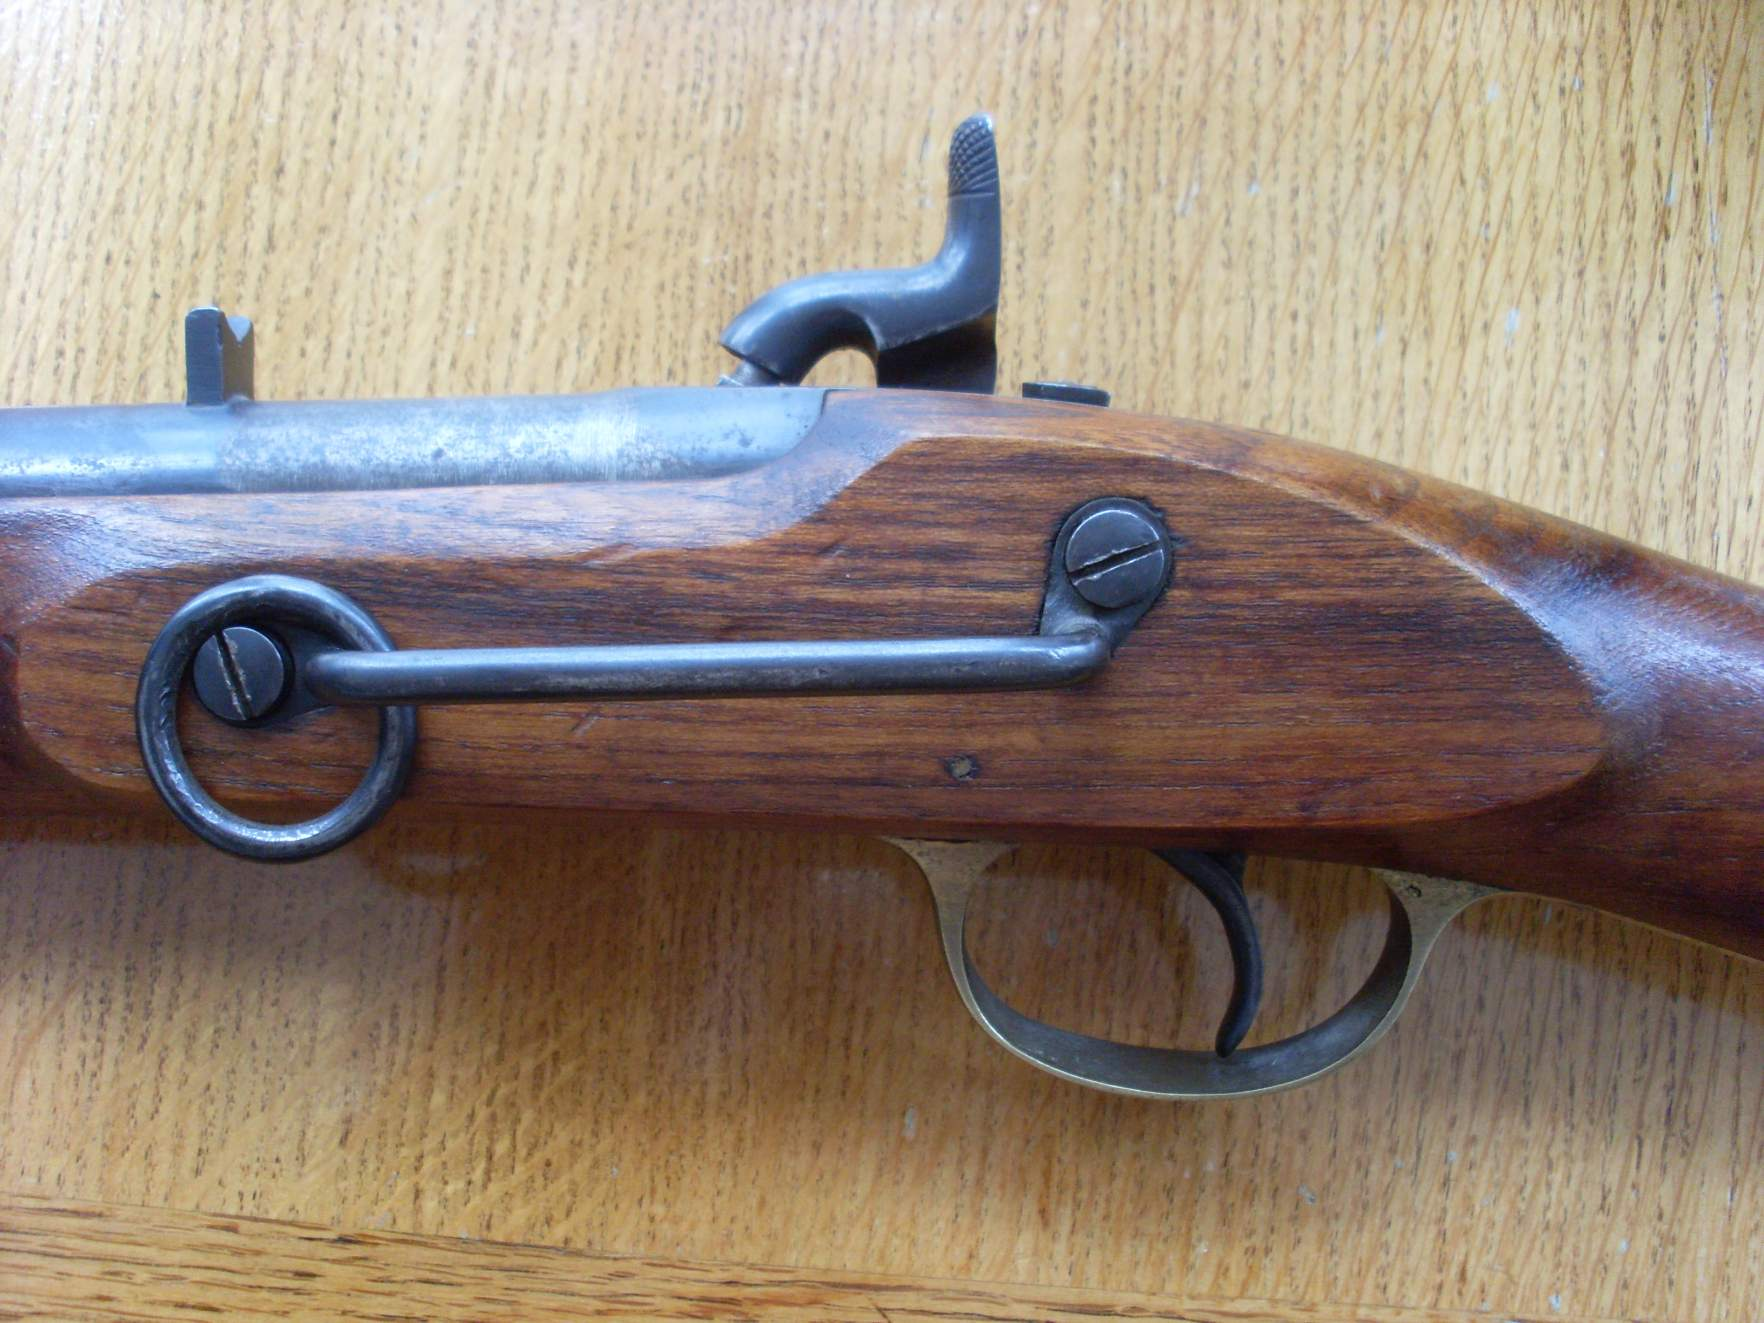 Indian Enfield Cavalry Carbine - Real or Repro? Help Please